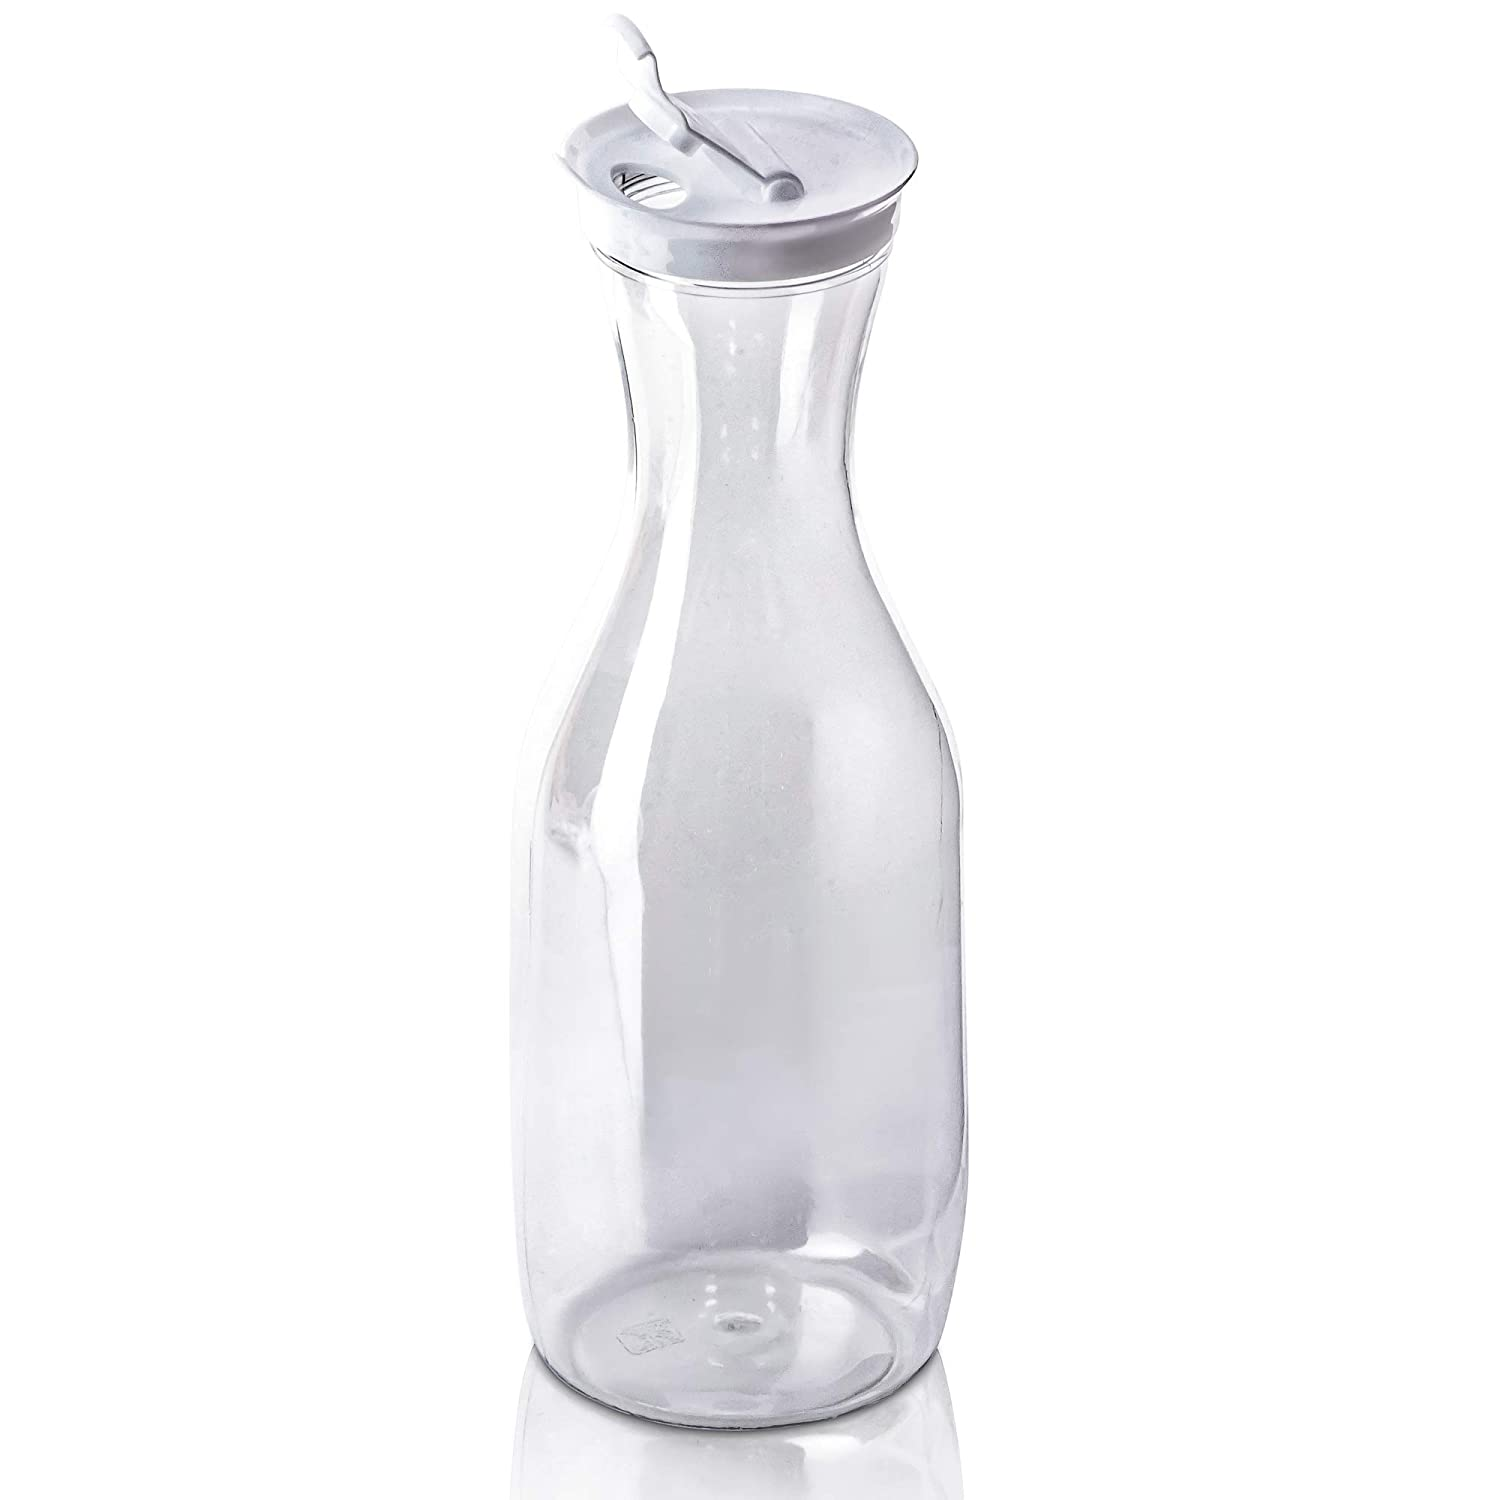 DecorRack Large Water Carafes, Bottle with Flip Top Lid, 50 Oz -BPA Free- Plastic Juice Pitcher, Decanter, Jug, Serve Fridge Cold Iced Tea, Water, for Outdoors, Picnic, Parties, Clear (1 Pack)